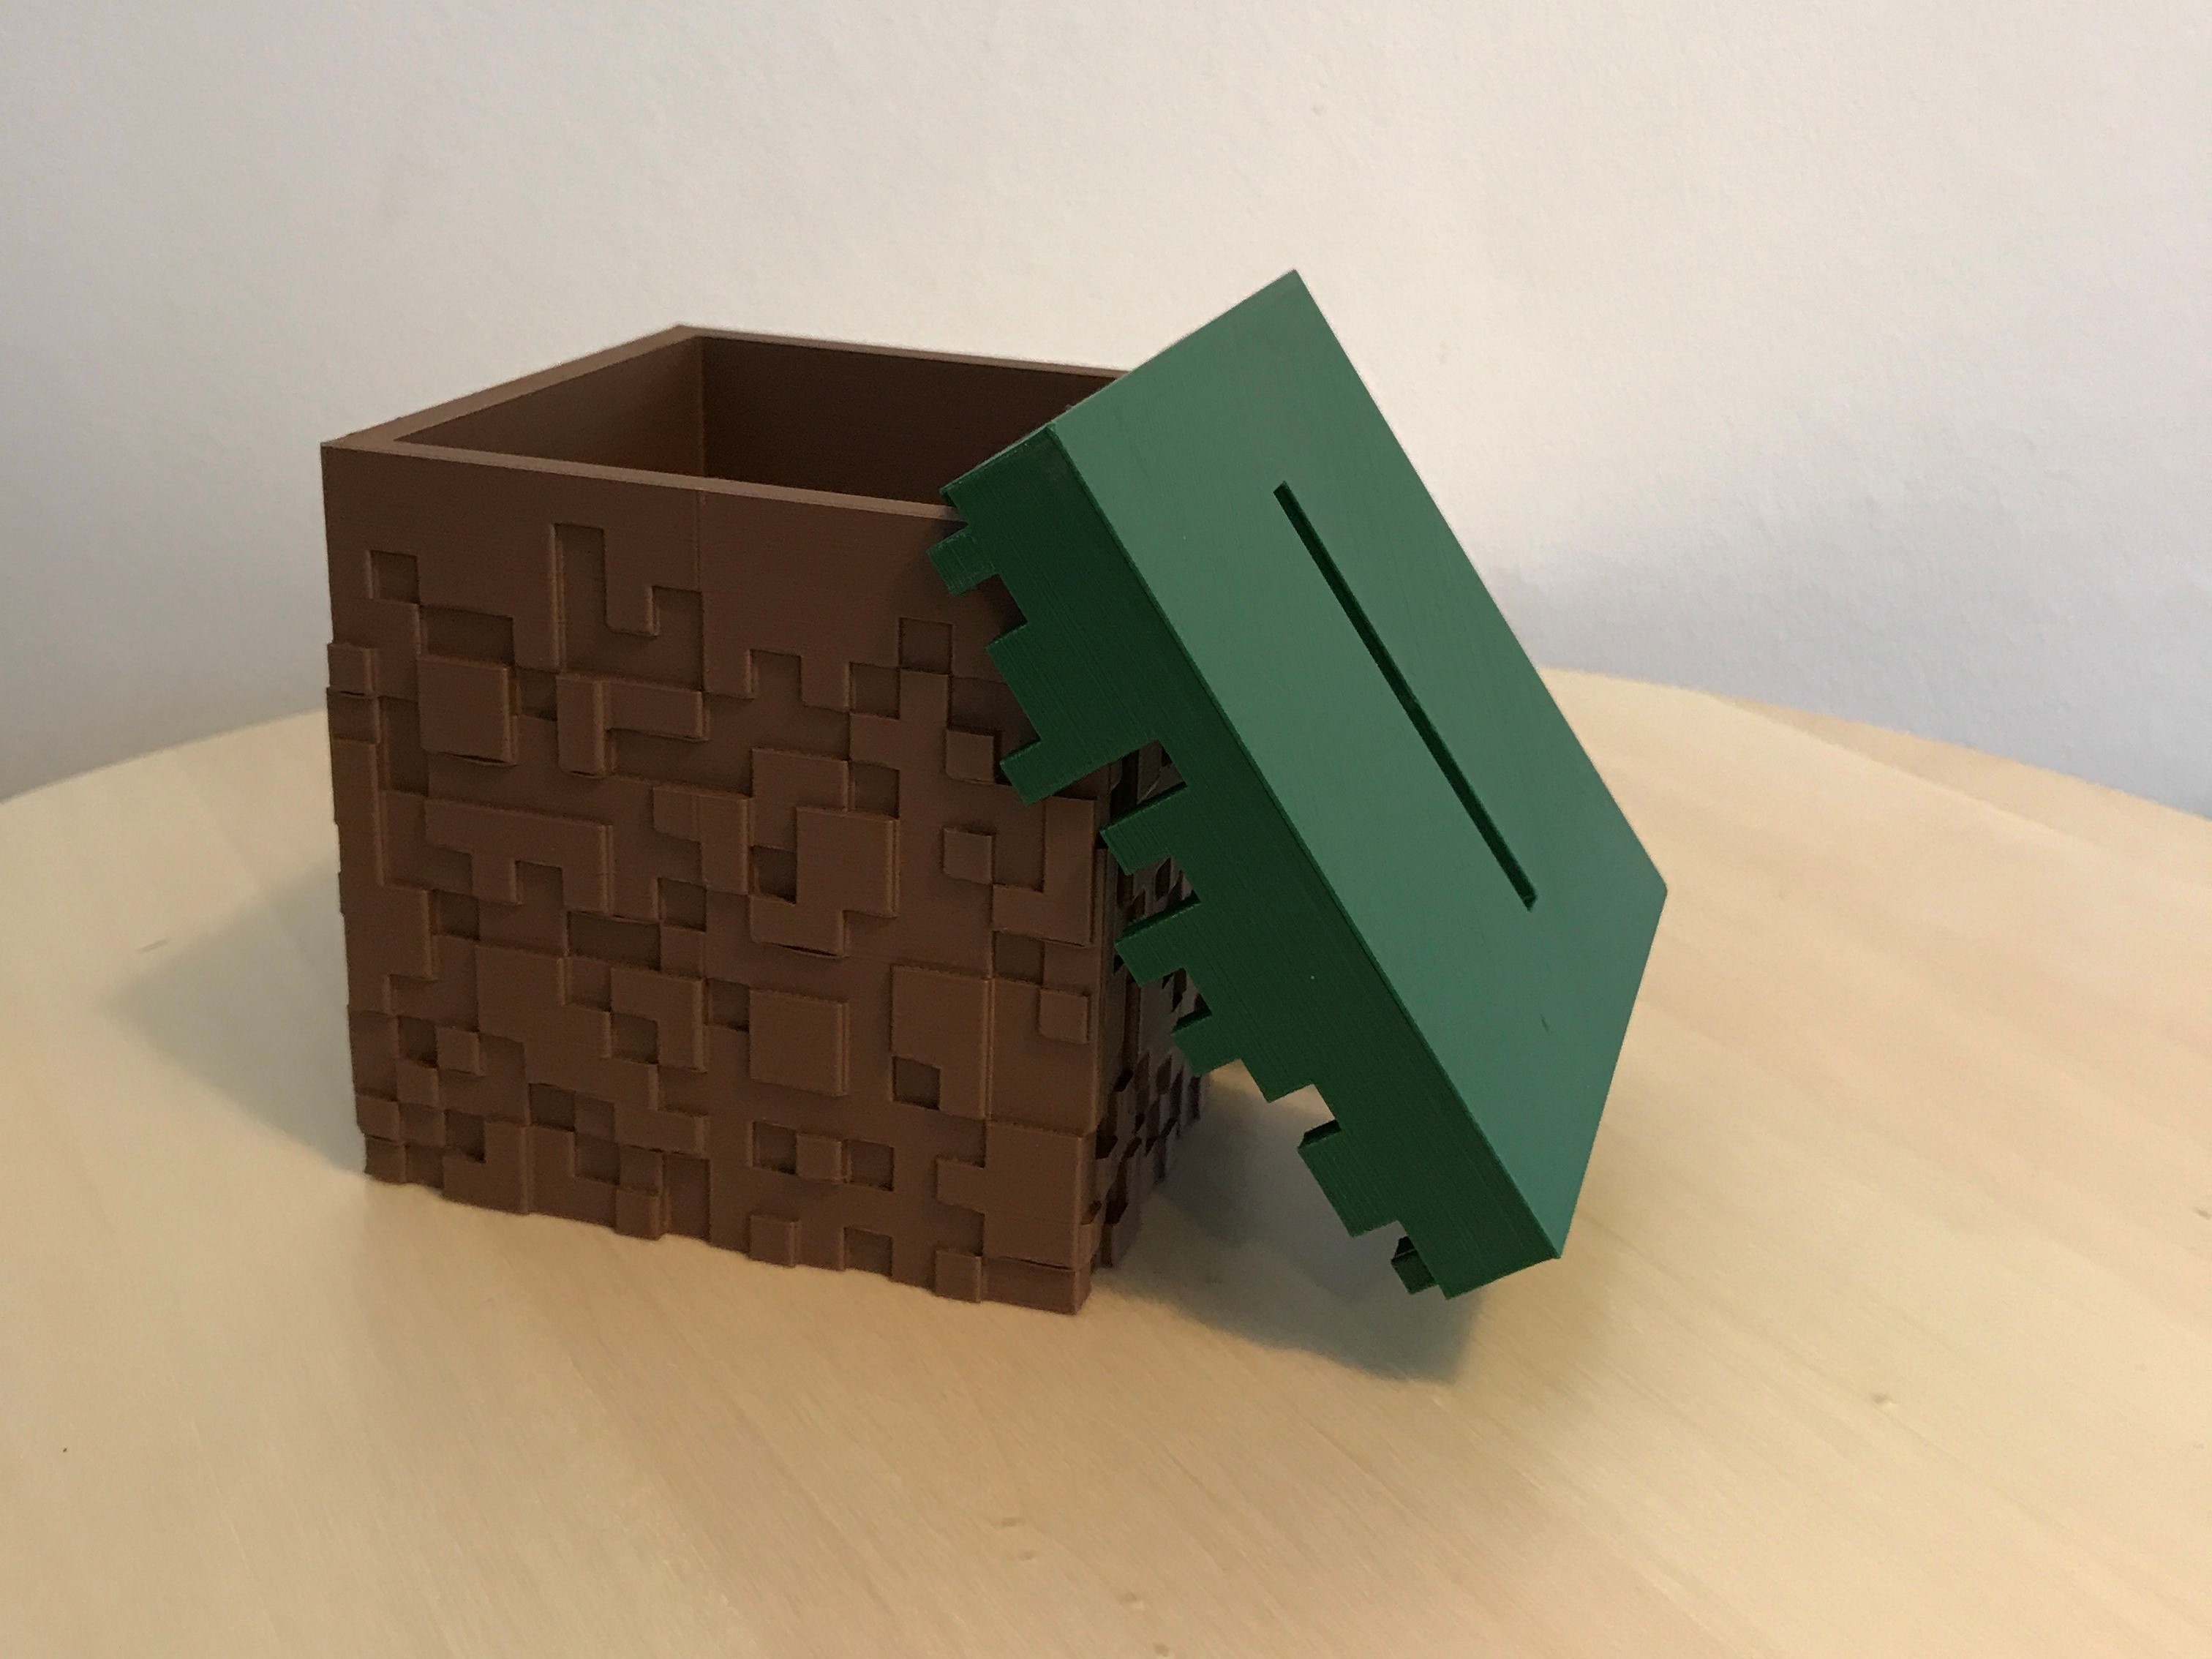 03.jpg Download free STL file Minecraft Grass Block Money Bank • 3D printing template, the3dsmith